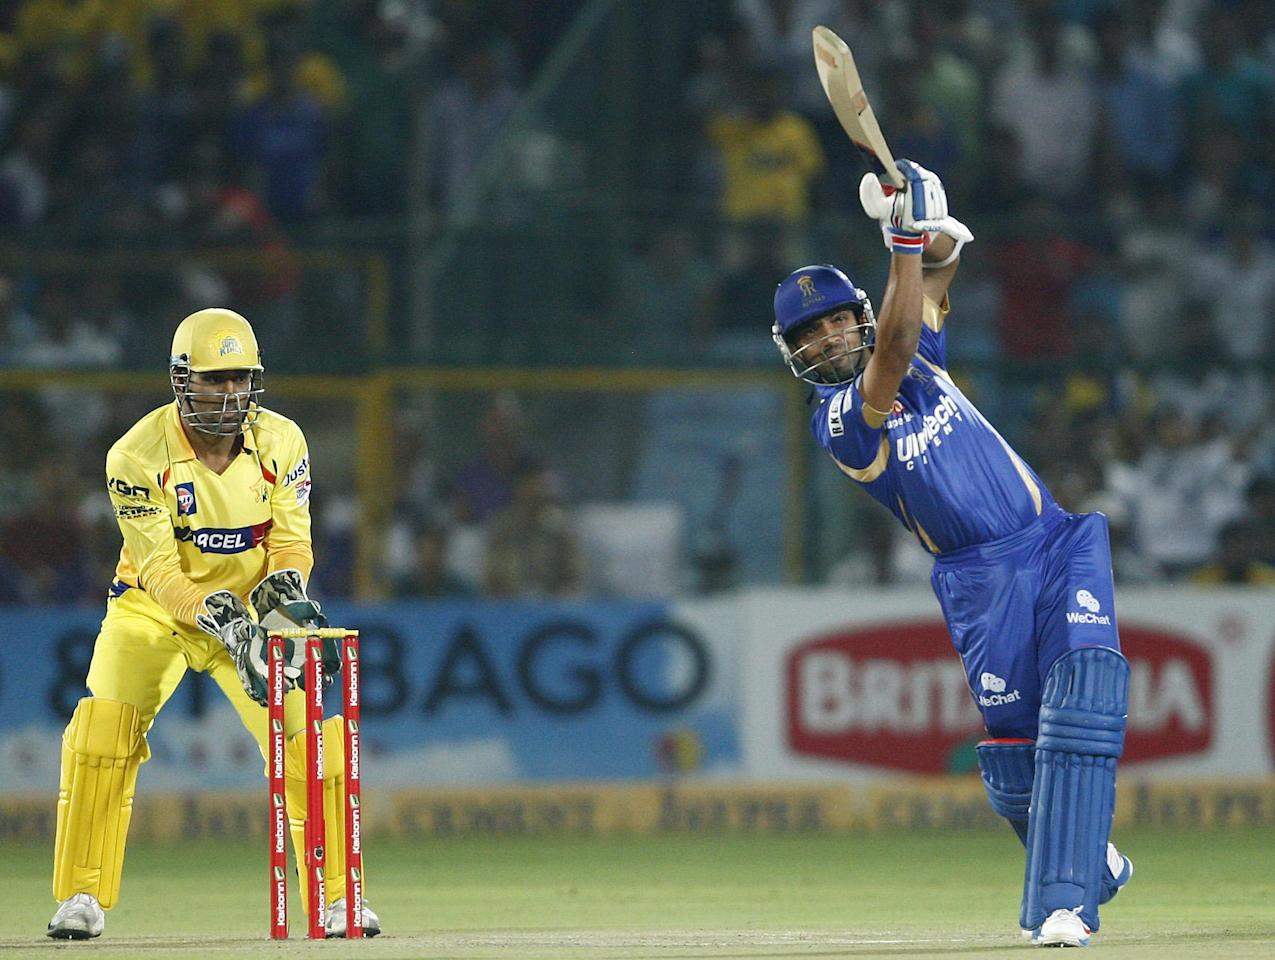 Rajasthan Royals batsman in action during the CLT20 1st Semi-Final between Rajasthan Royals and Chennai Super Kings at Sawai Mansingh Stadium in Jaipur on Oct. 4, 2013.